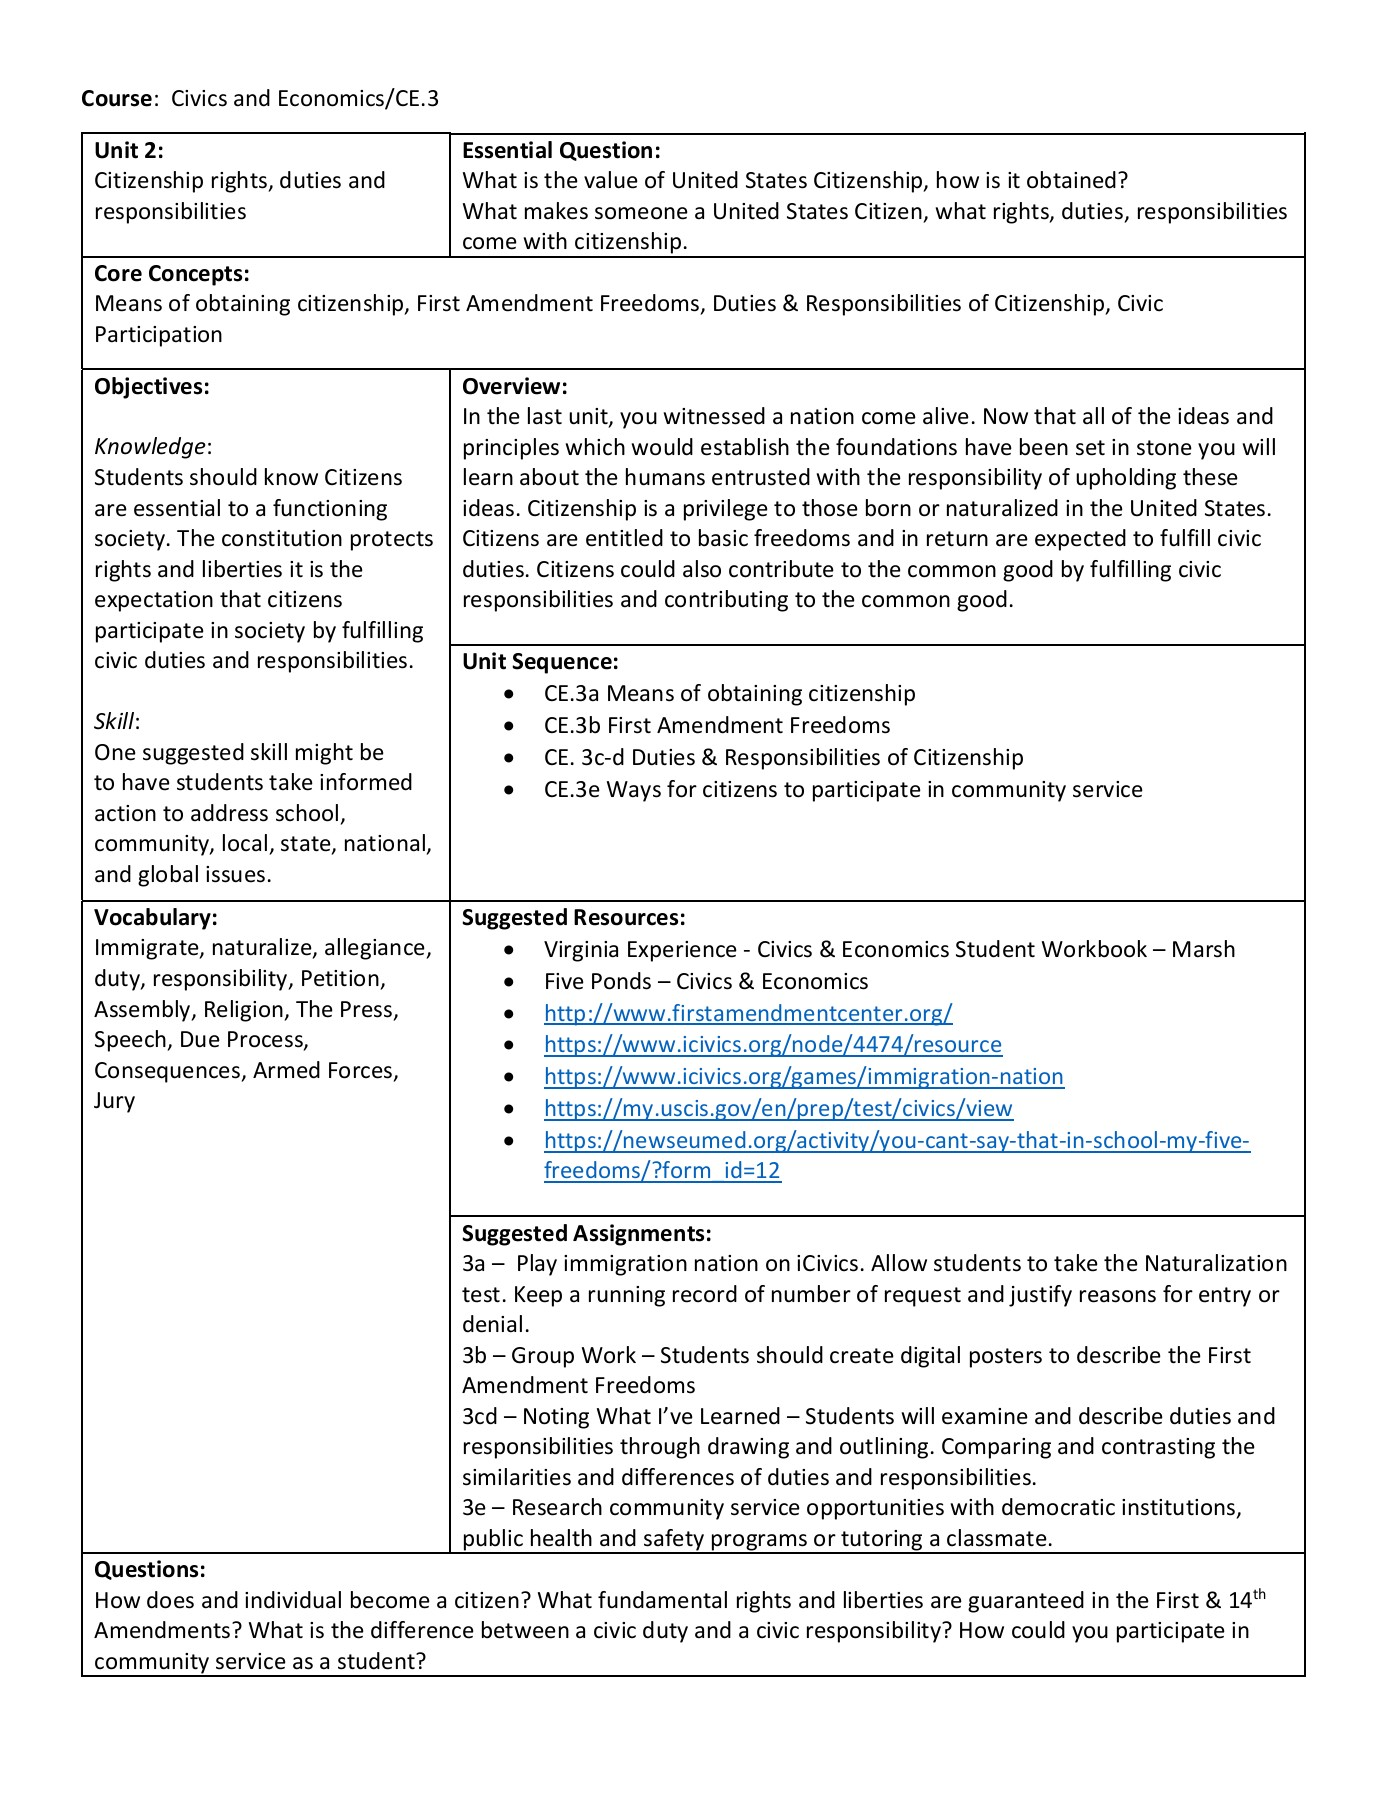 The Great State Icivics Worksheet Answers